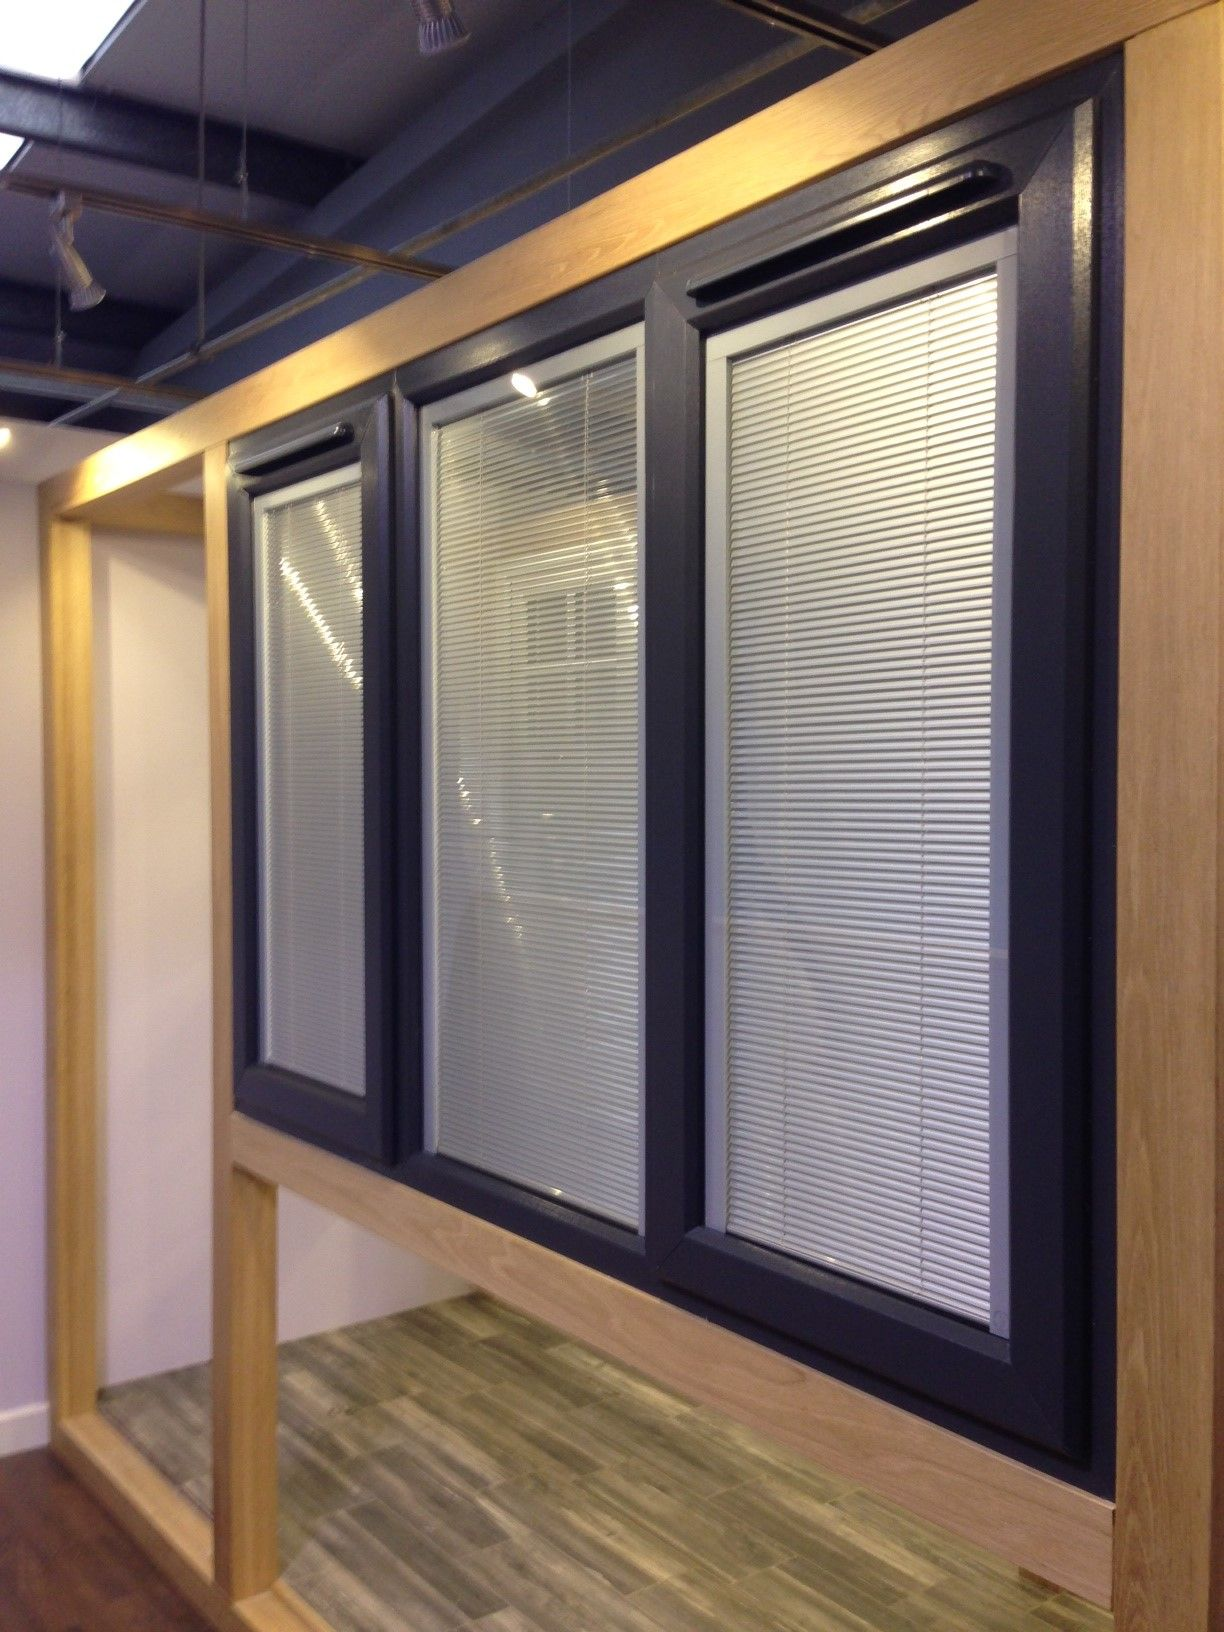 Brand New Integral Venetian Blinds Have Just Been Fitted